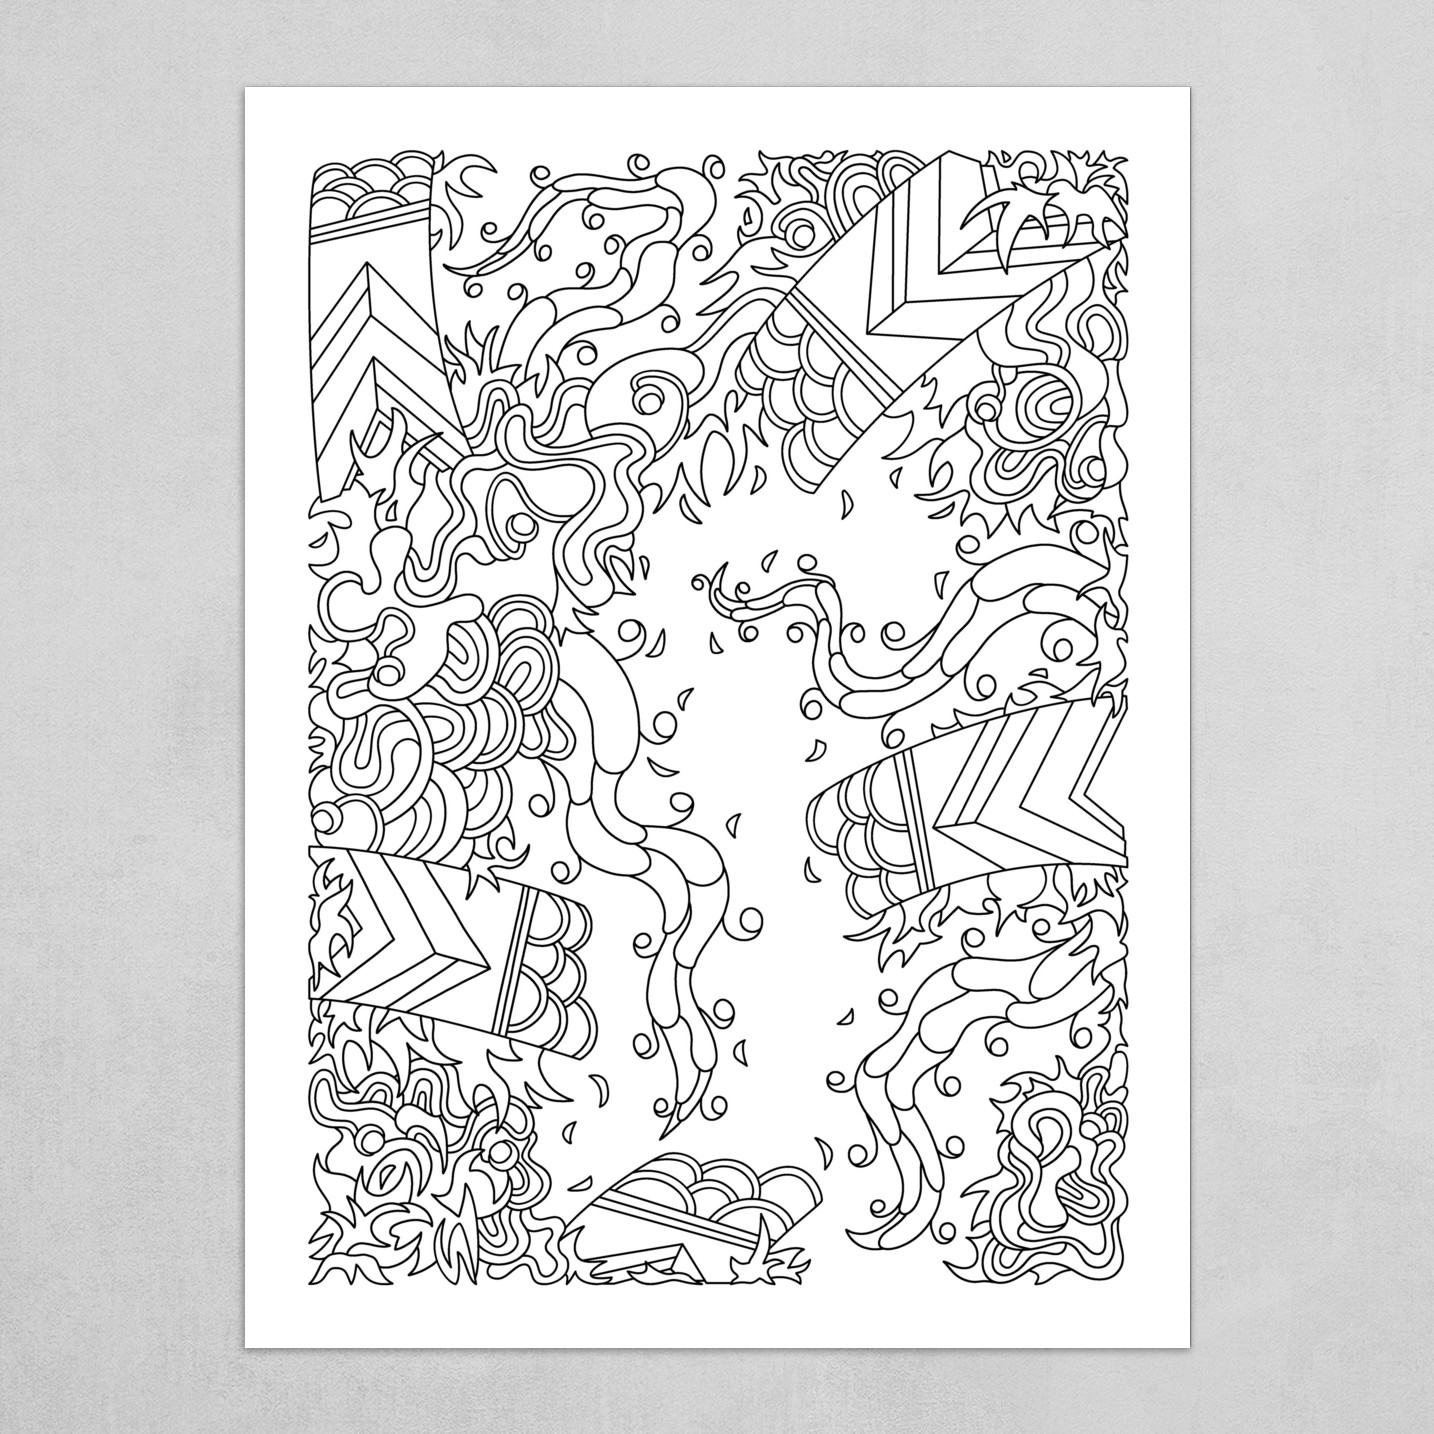 Wandering Abstract Line Art 27: Black & White